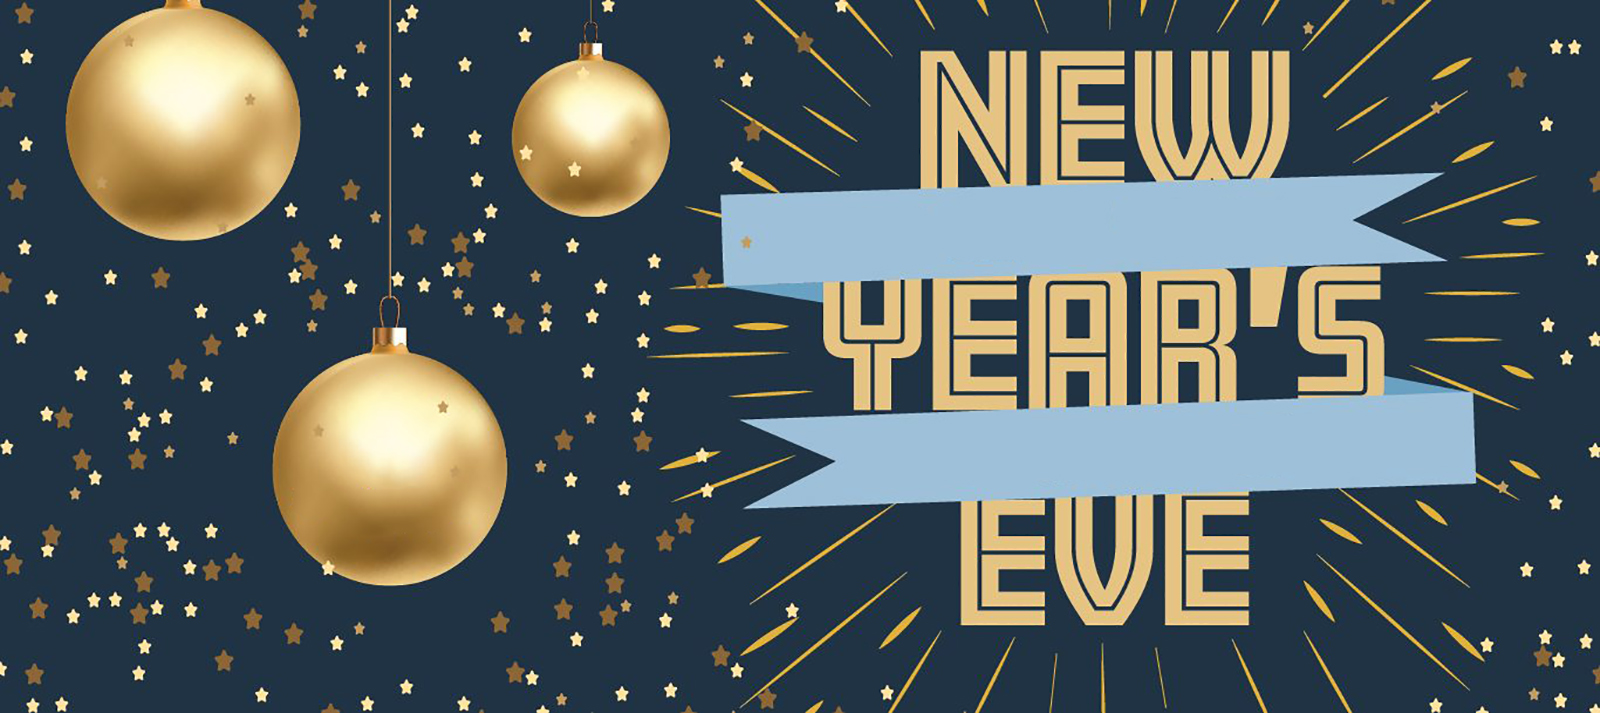 DEC 31 New Years Eve Graphic For Digital Signage